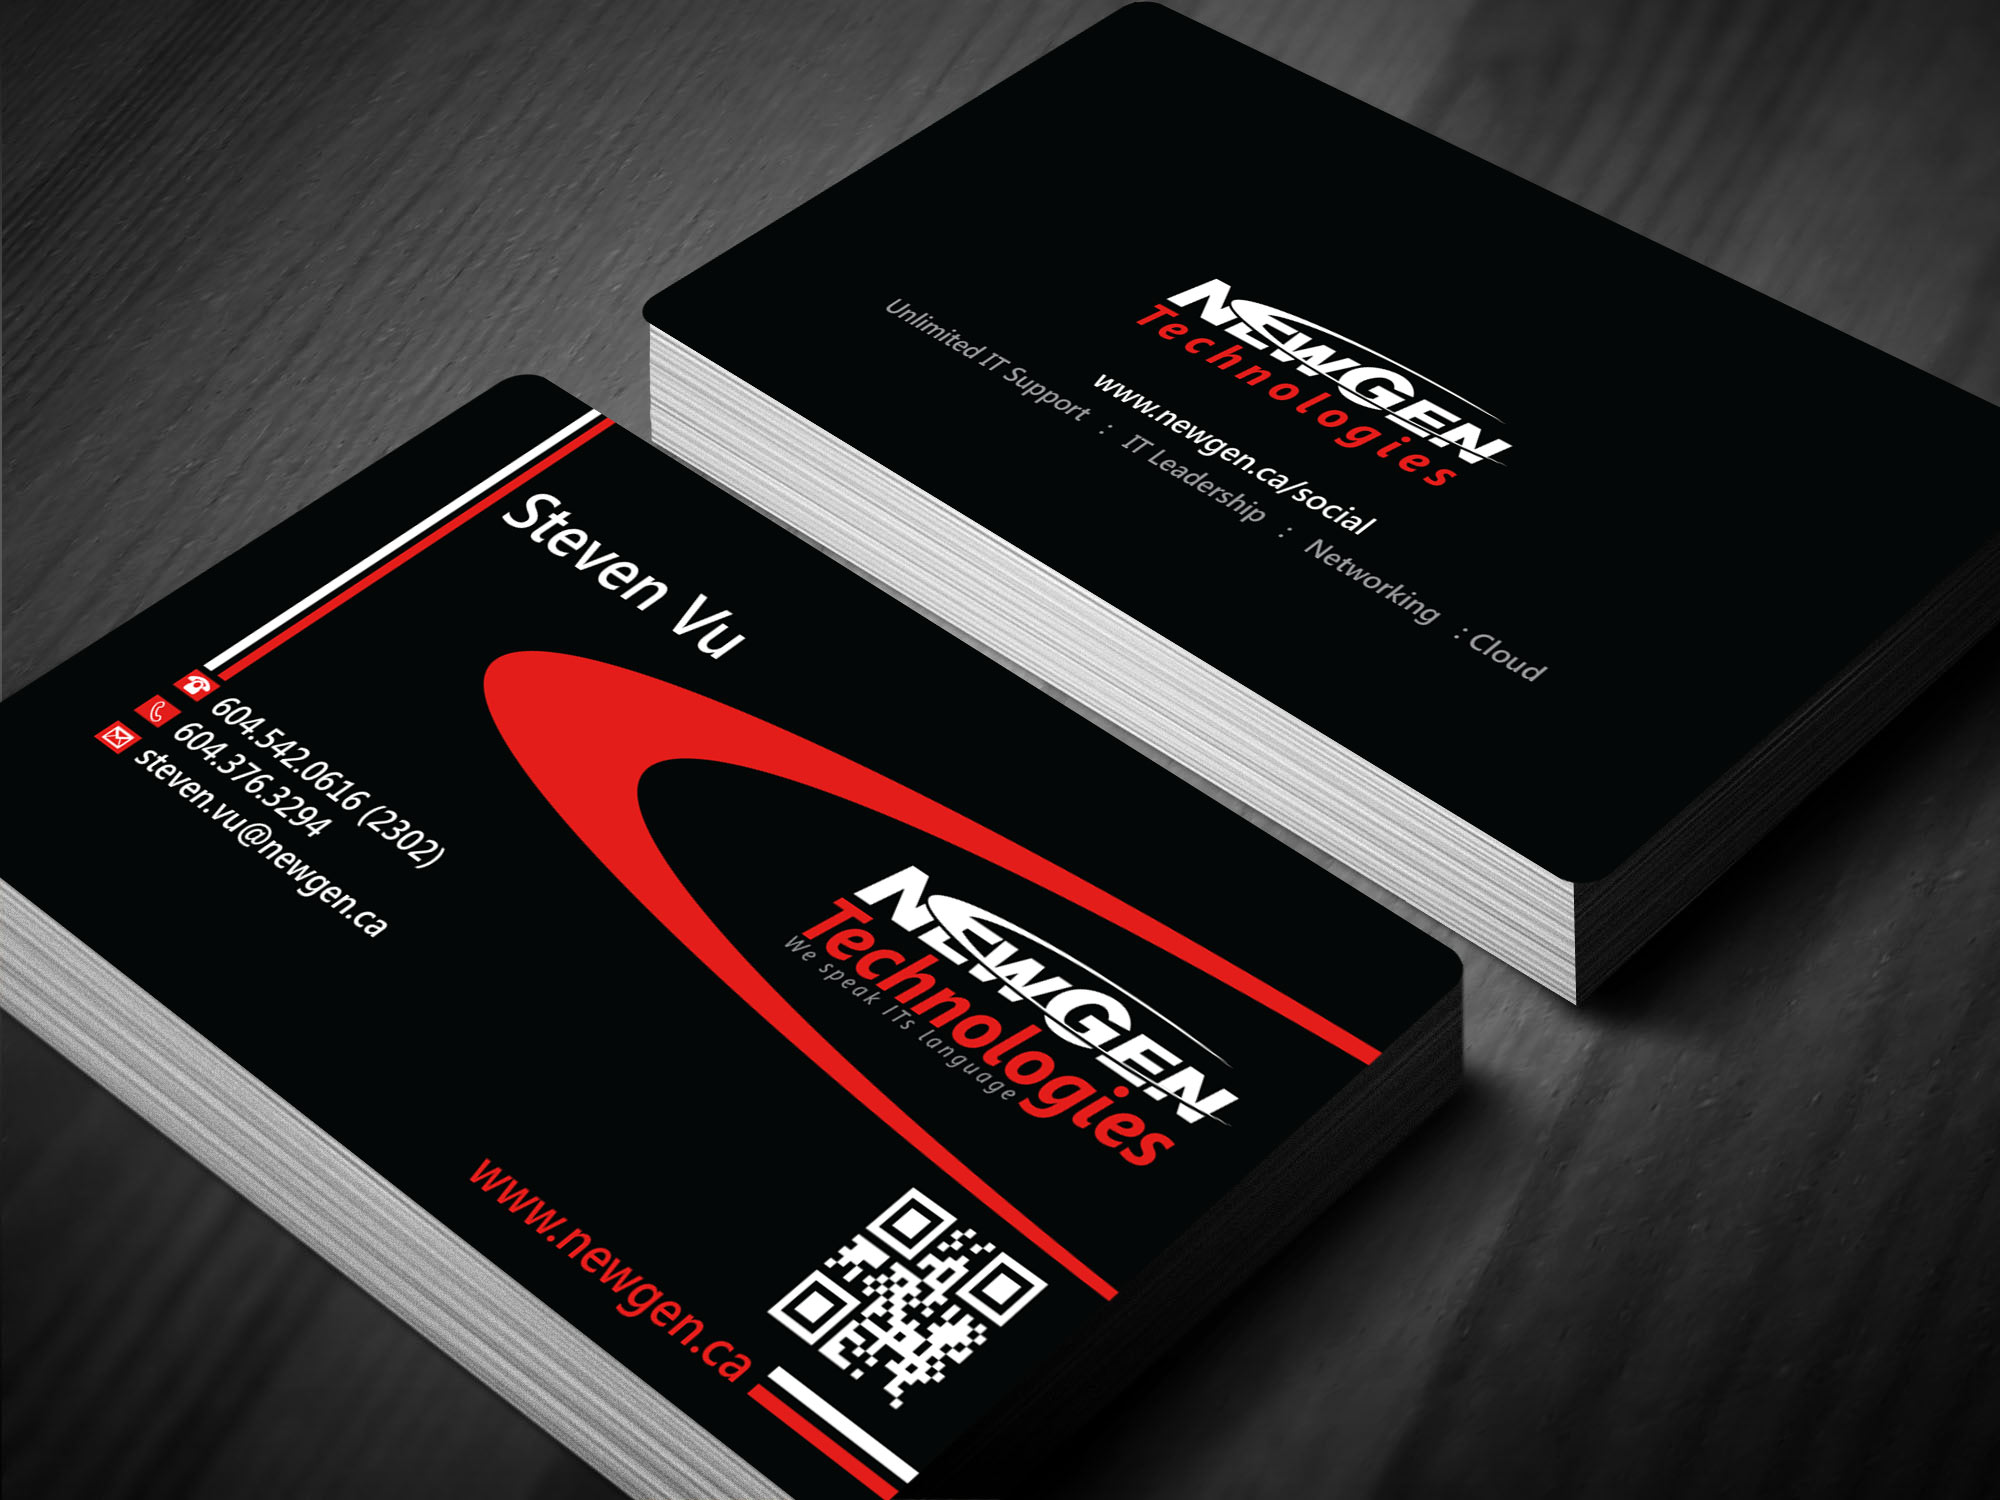 Business Card Design by lagalag - Entry No. 37 in the Business Card Design Contest Inspiring Business Card Design for NewGen Technologies.